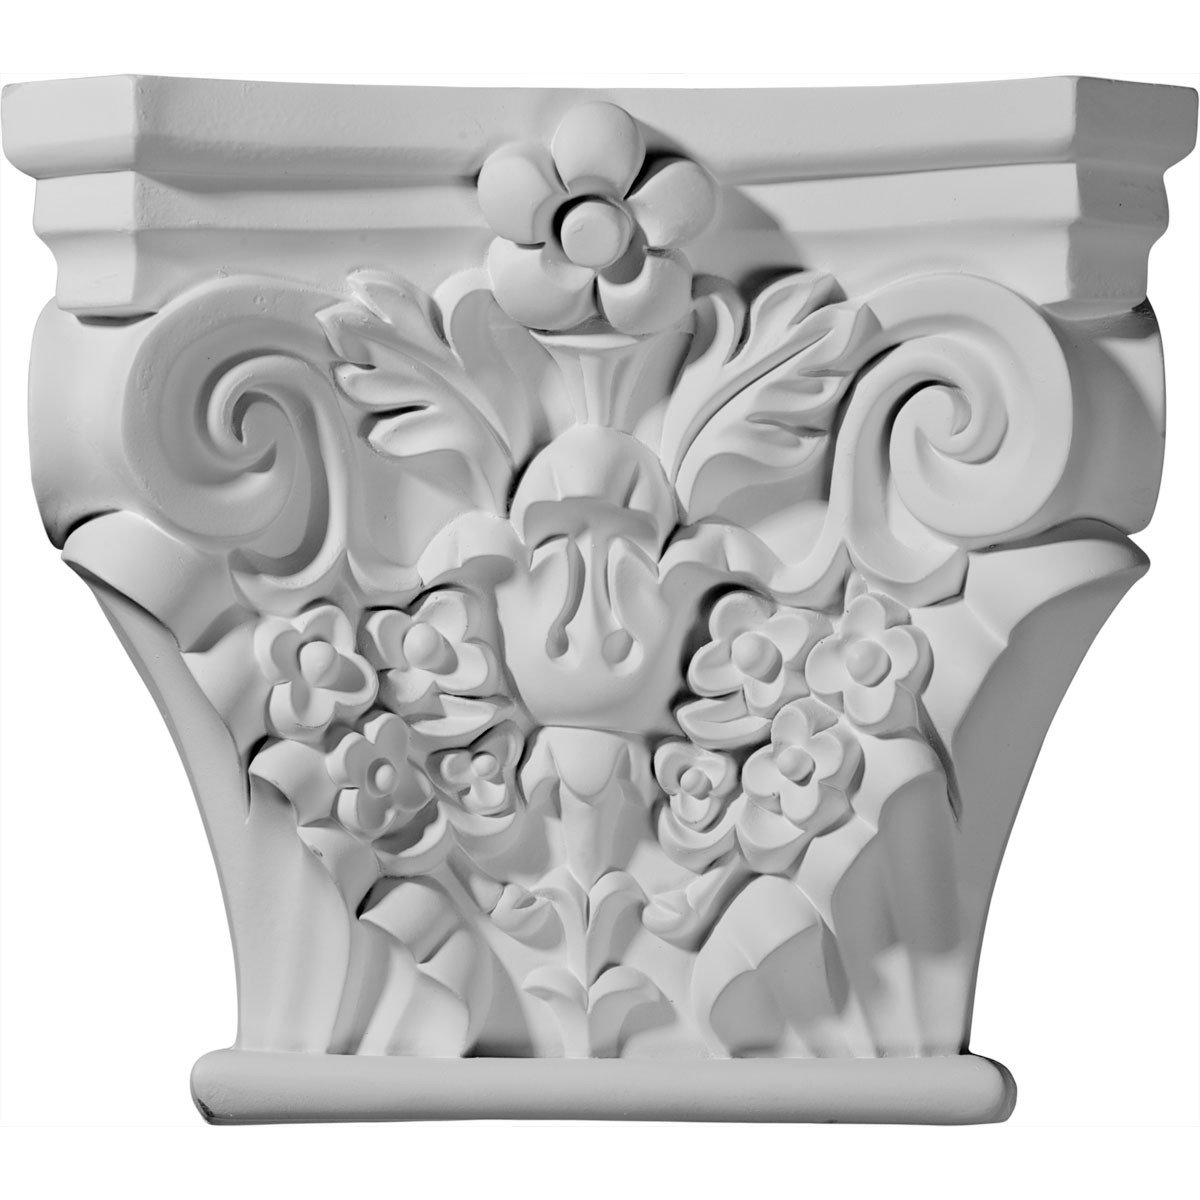 "EM-CAP11X07X11AT - 11 1/2""W x 3 3/8""D x 10 1/8""H Anthony Capital (Fits Pilasters up to 8""W x 1 1/2""D)"